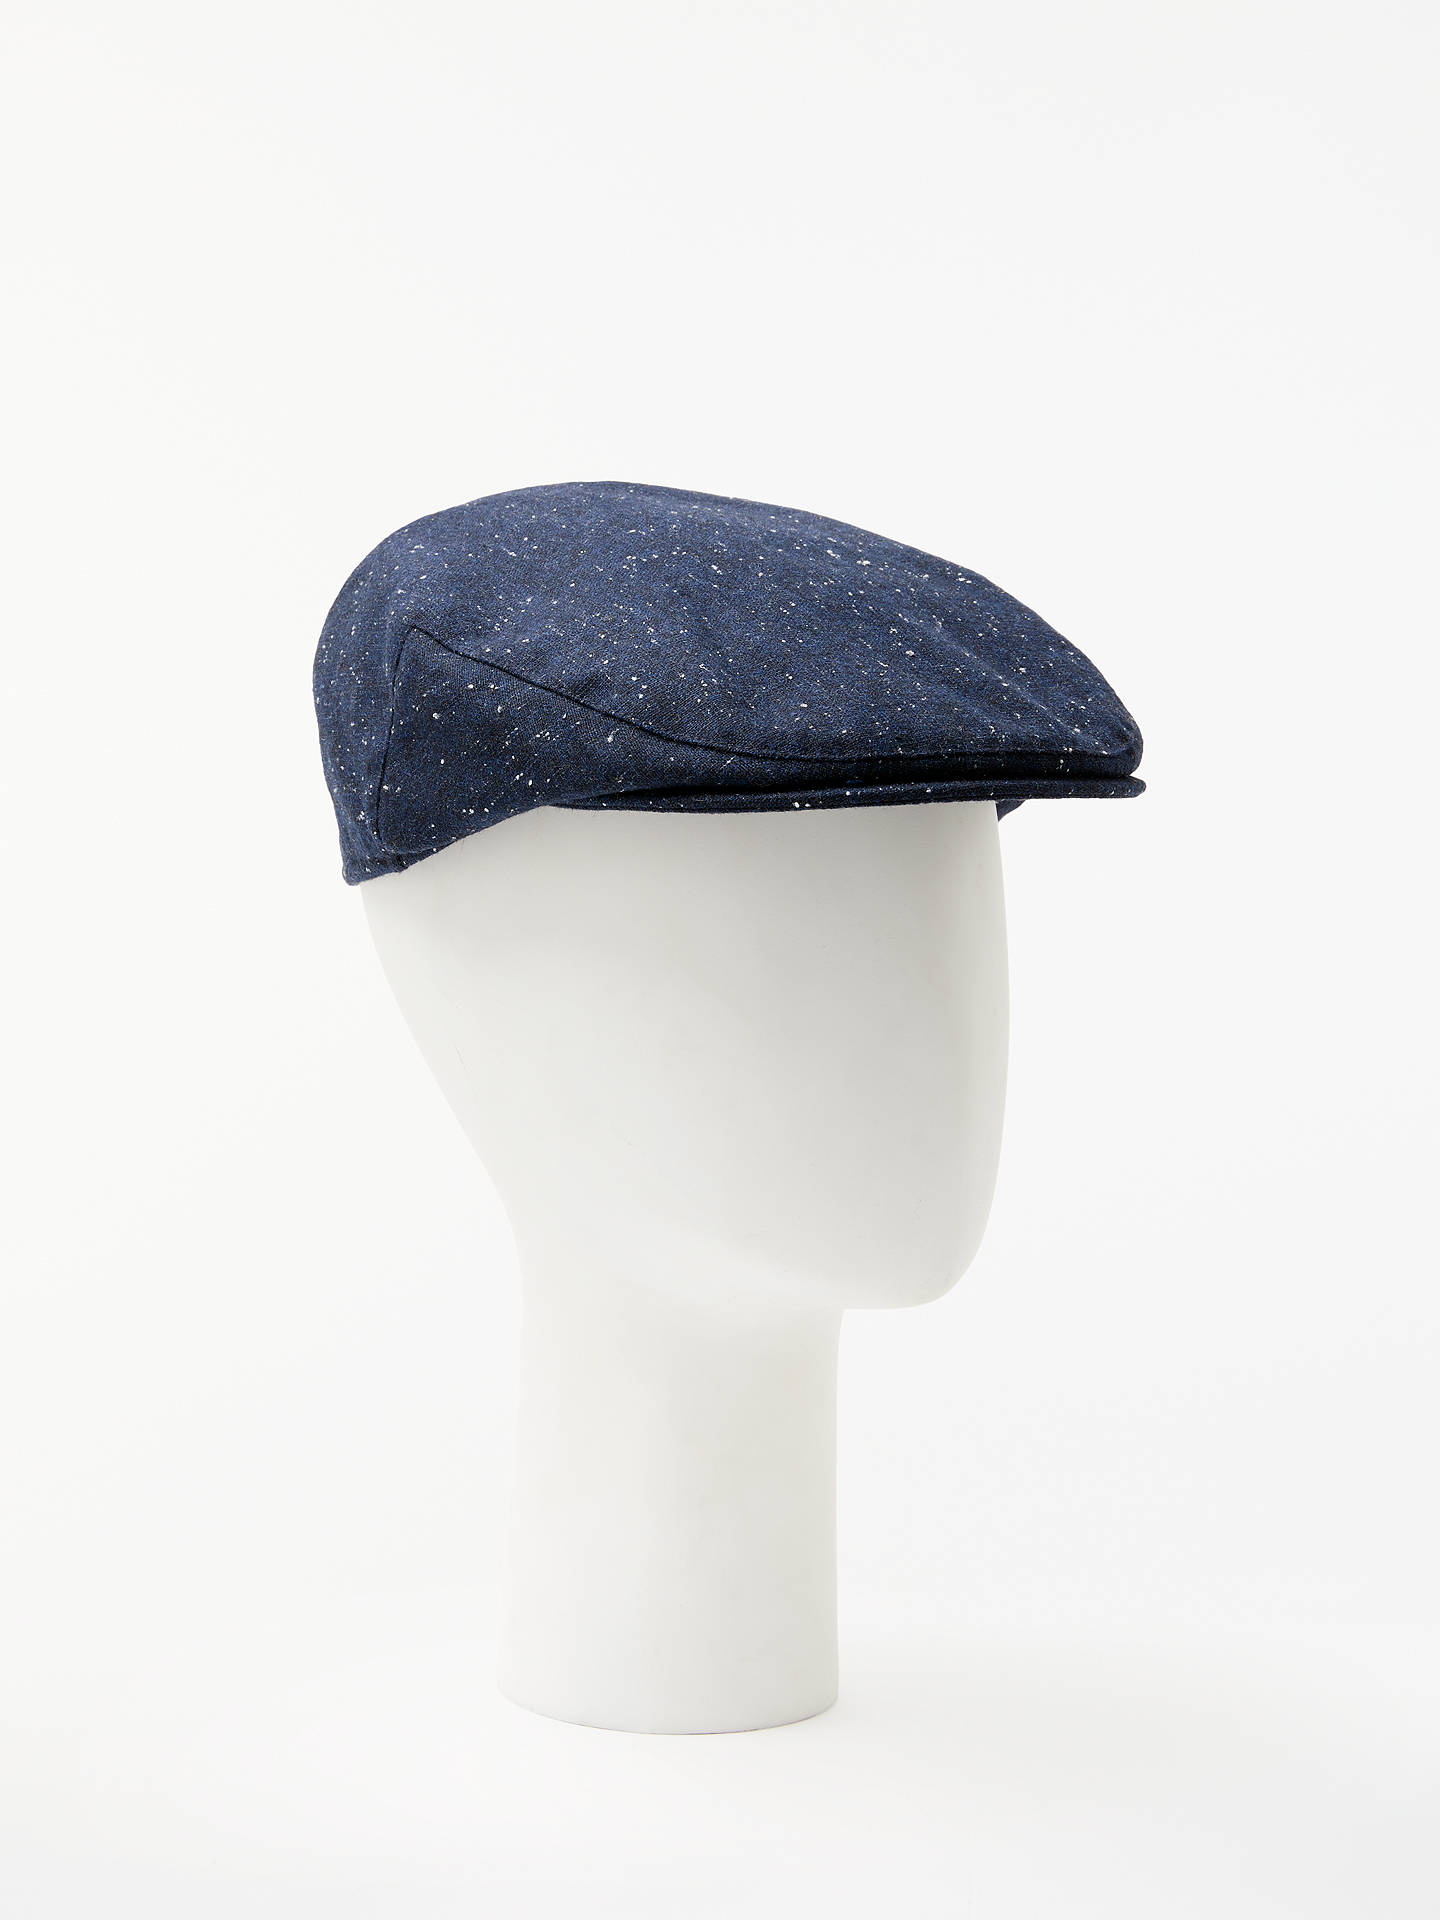 BuyJohn Lewis & Partners Flecked Flat Cap, Navy, S/M Online at johnlewis.com